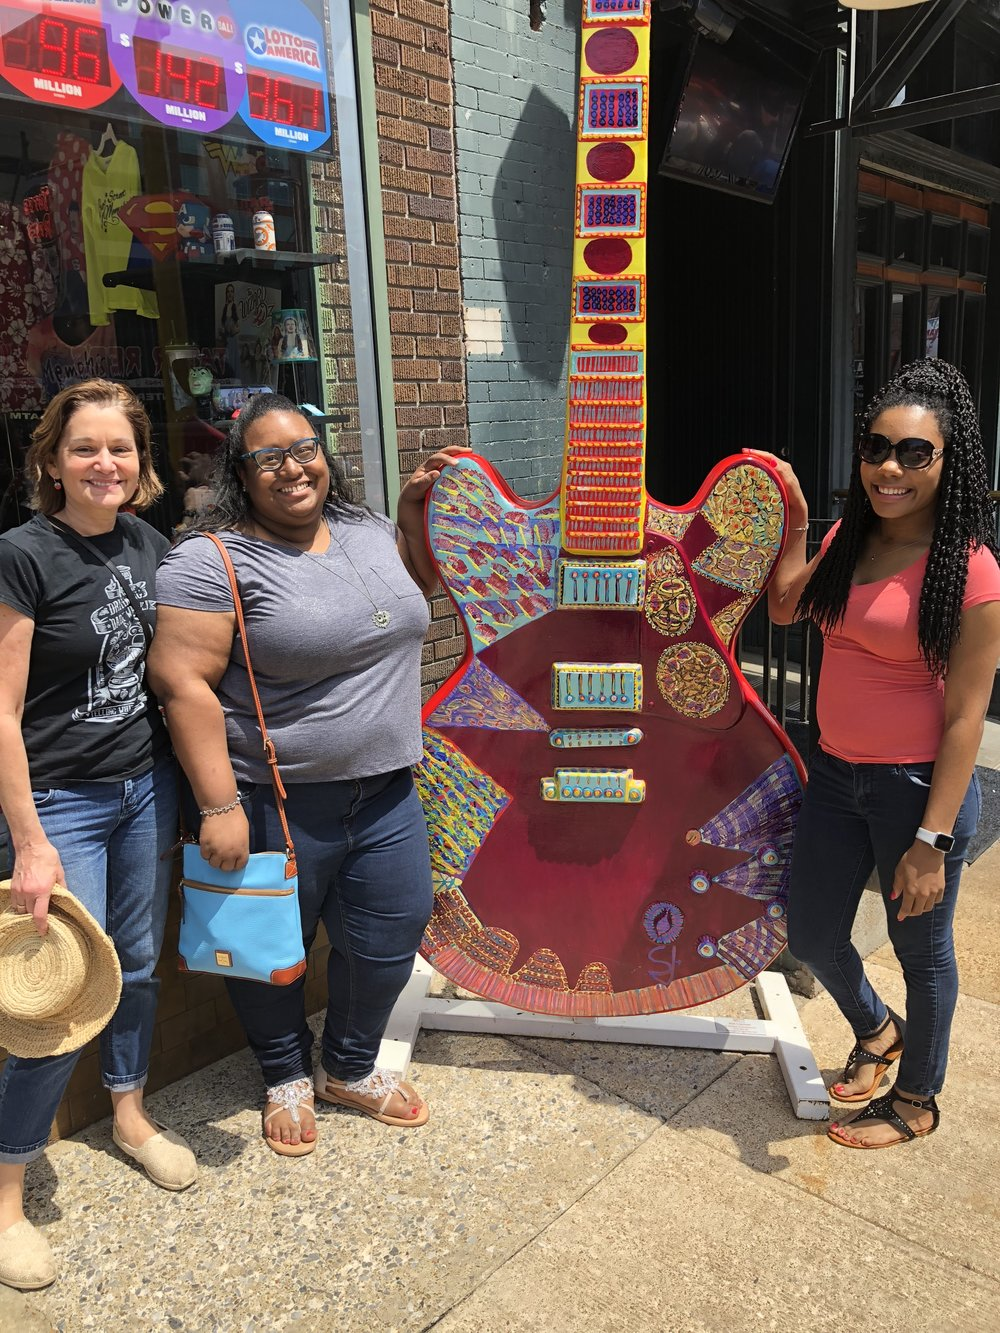 Susan, Noelle, and I on Beale St